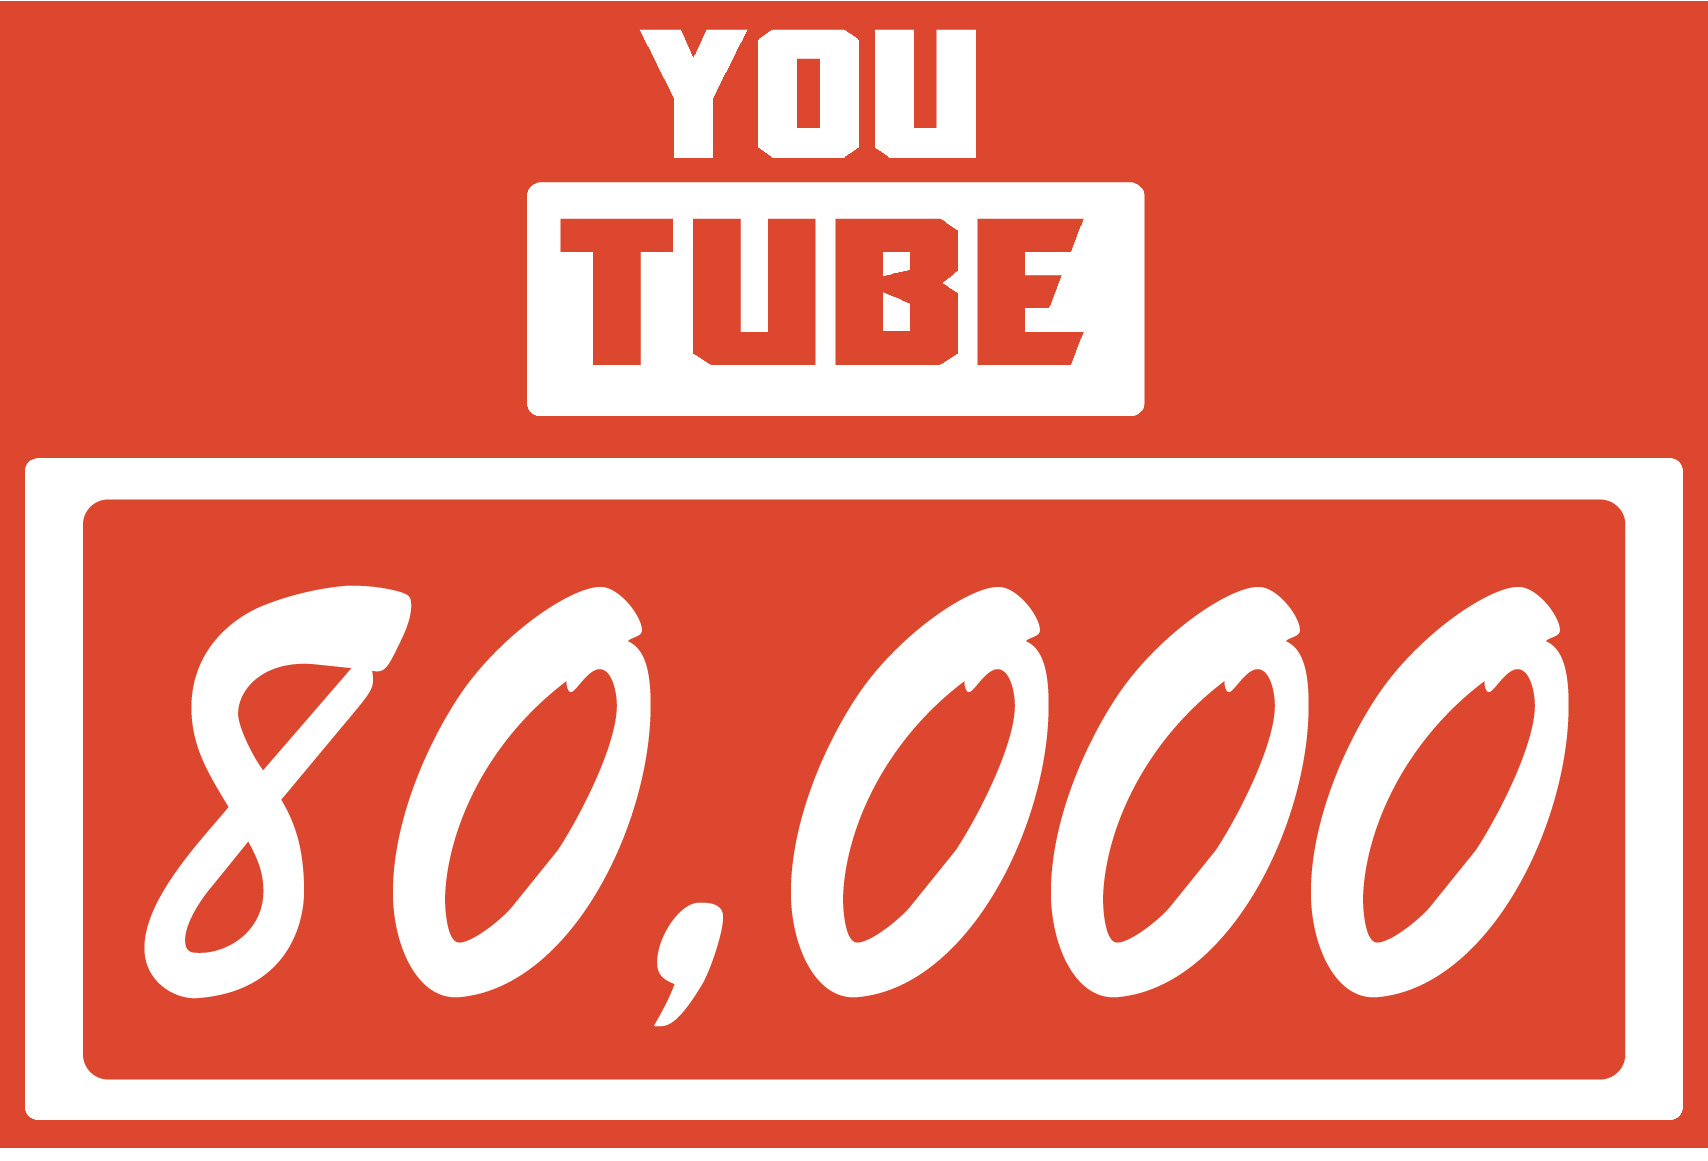 80,00 High Quality YouTube Views Fully Safe